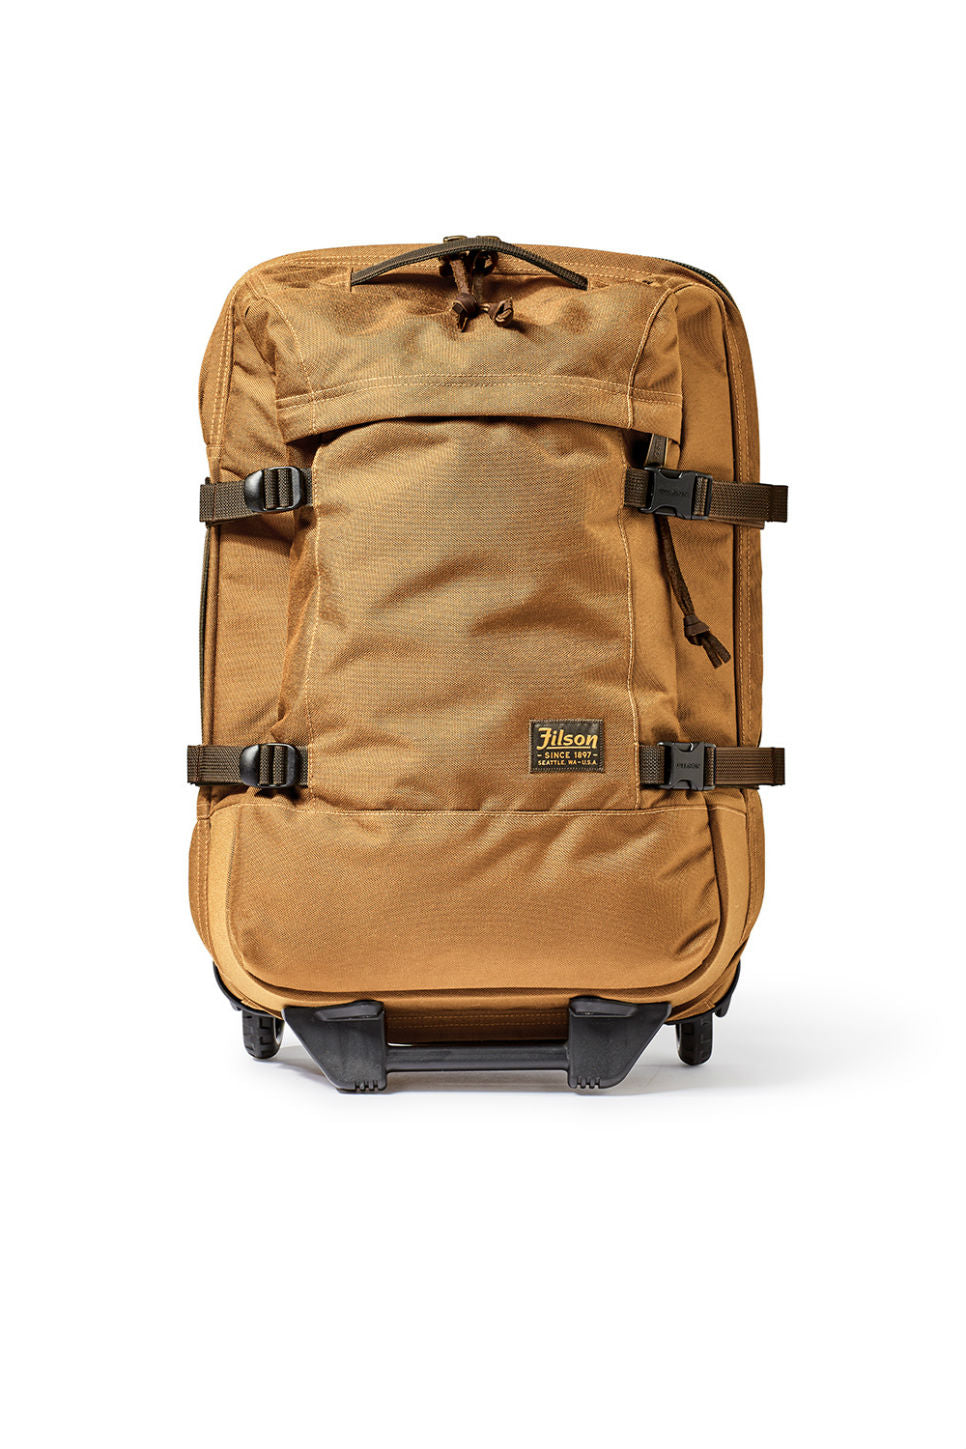 Filson - Dryden 2 Wheel Carry On - Whiskey - Front